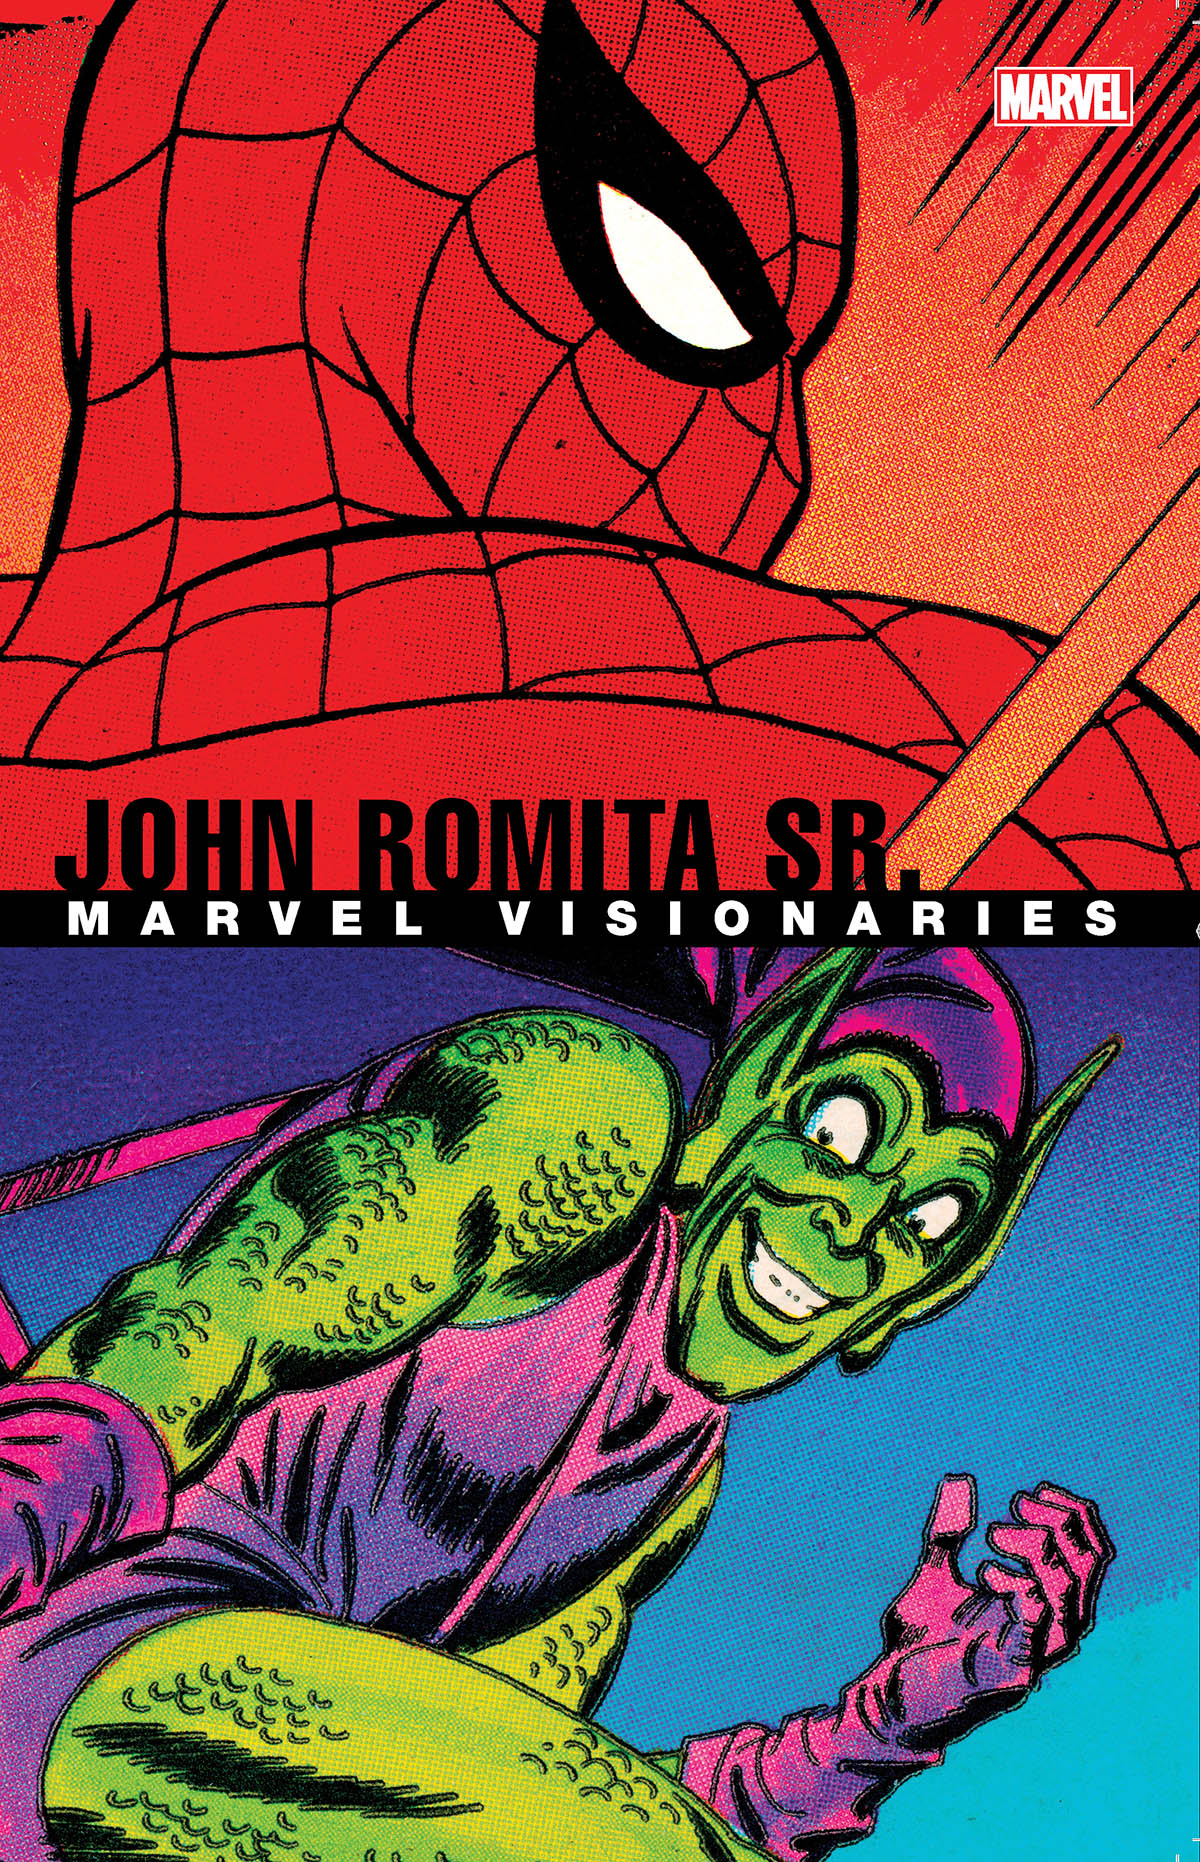 Marvel Visionaries: John Romita Sr. (Trade Paperback) - Comic Issues - Comic Books - Marvel Marvel Visionaries: John Romita Sr. (Trade Paperback) - Comic Issues - Marvel - 웹